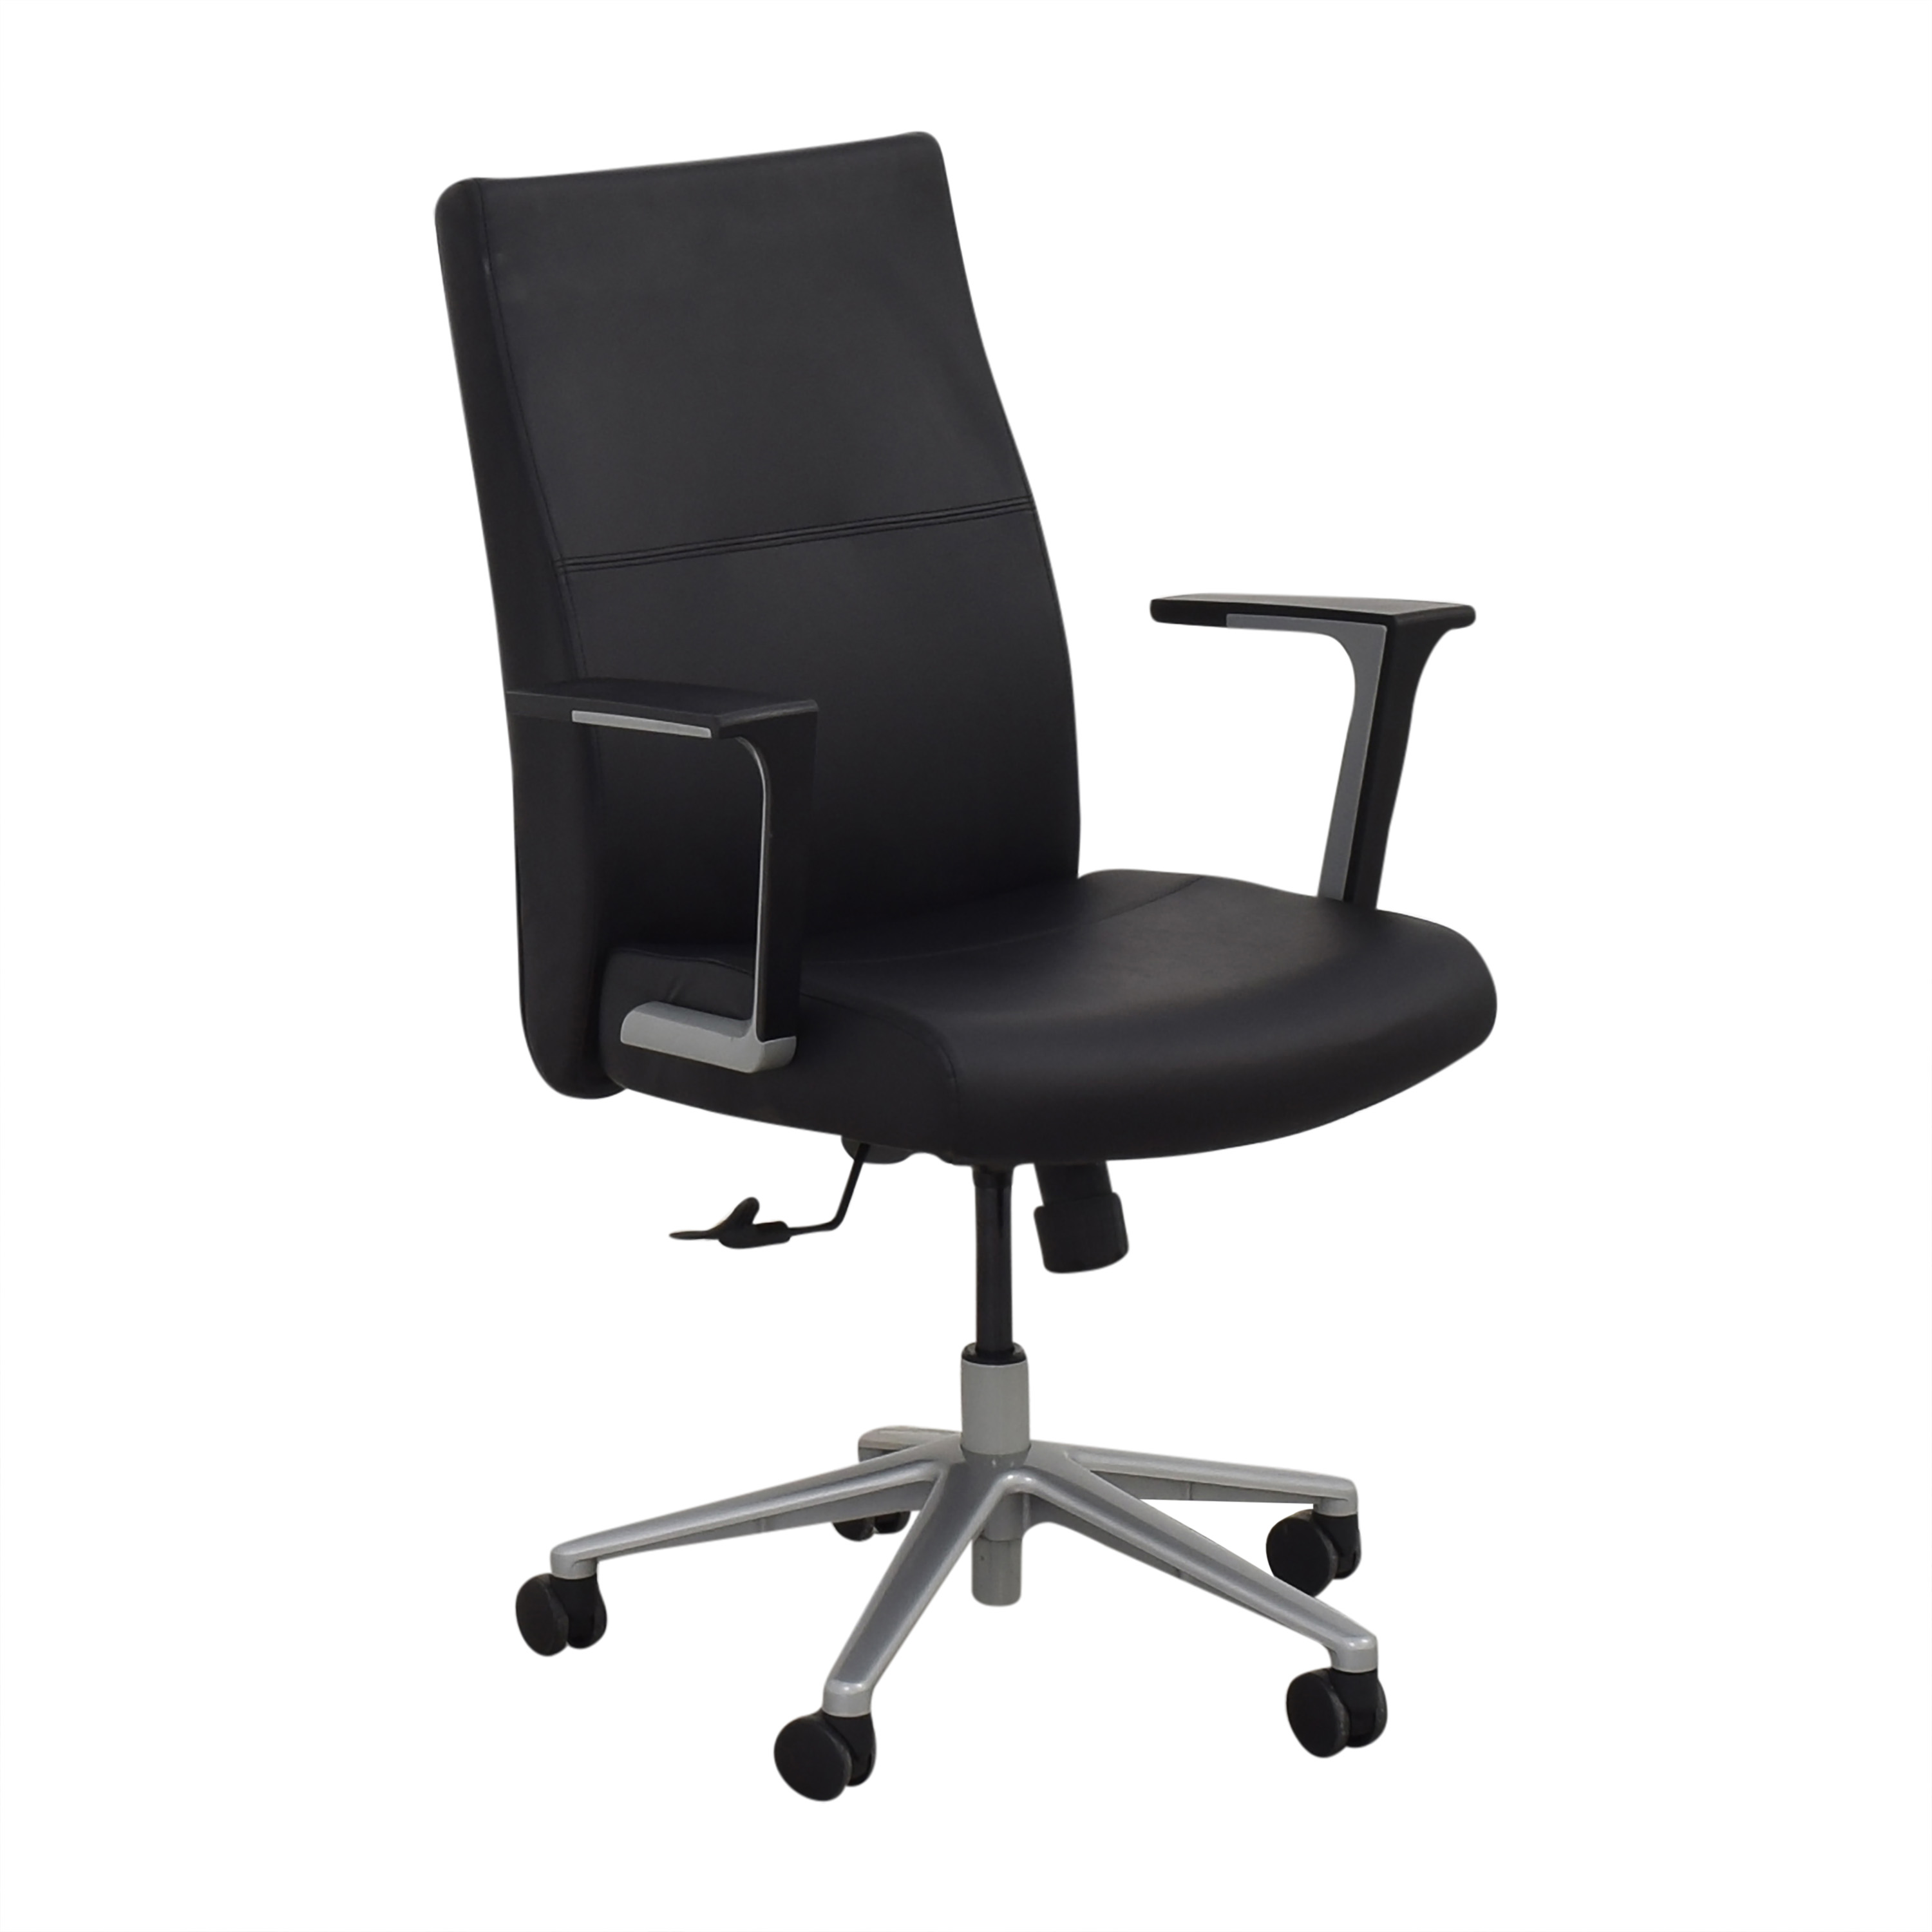 SitOnIt SitOnIt Prava Office Chair discount